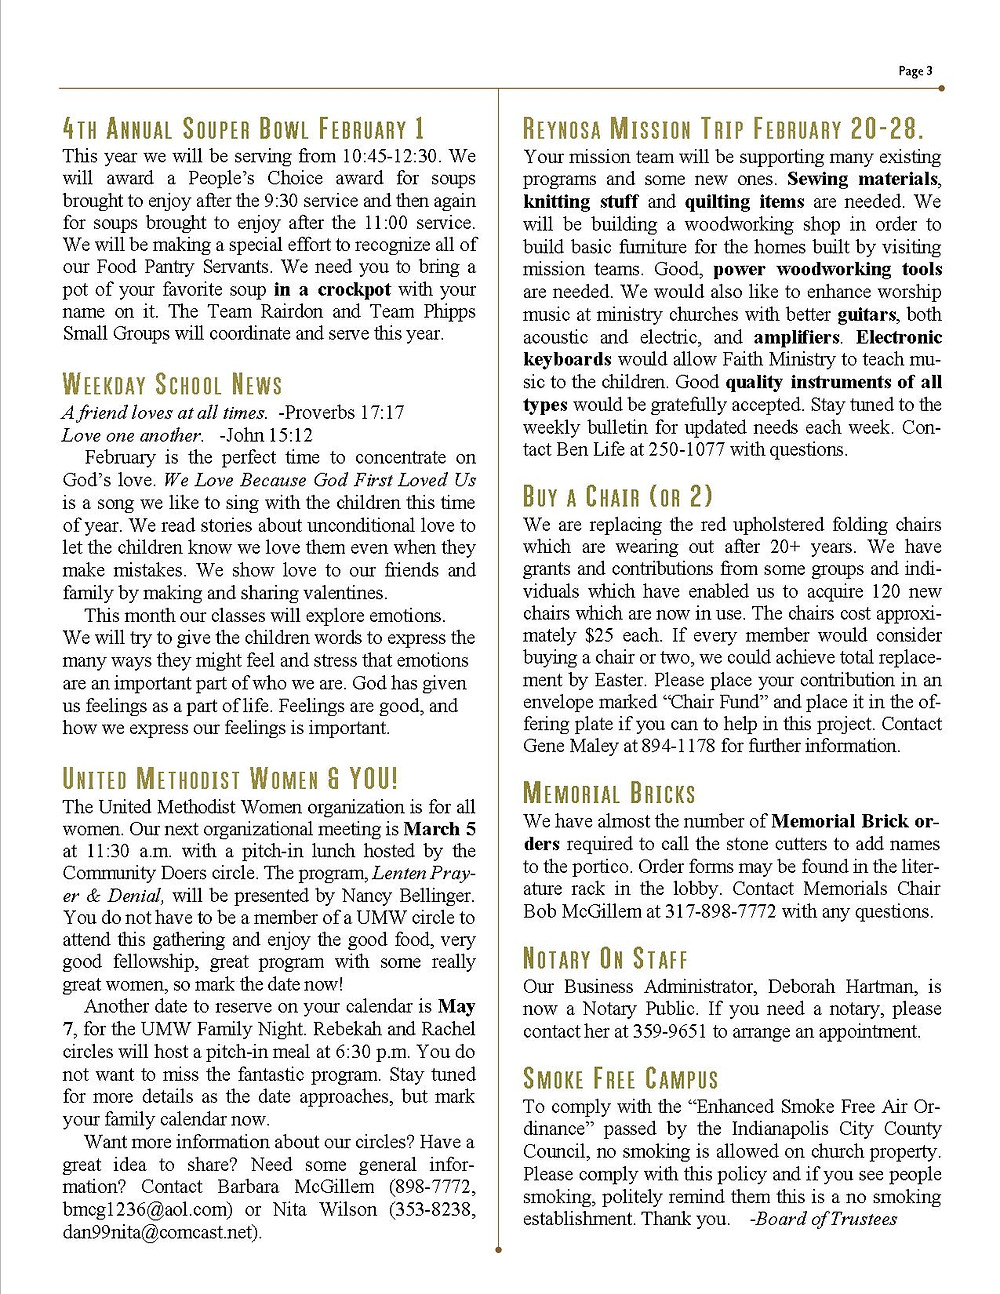 02 February Shofar 2015 web pg 3.jpg